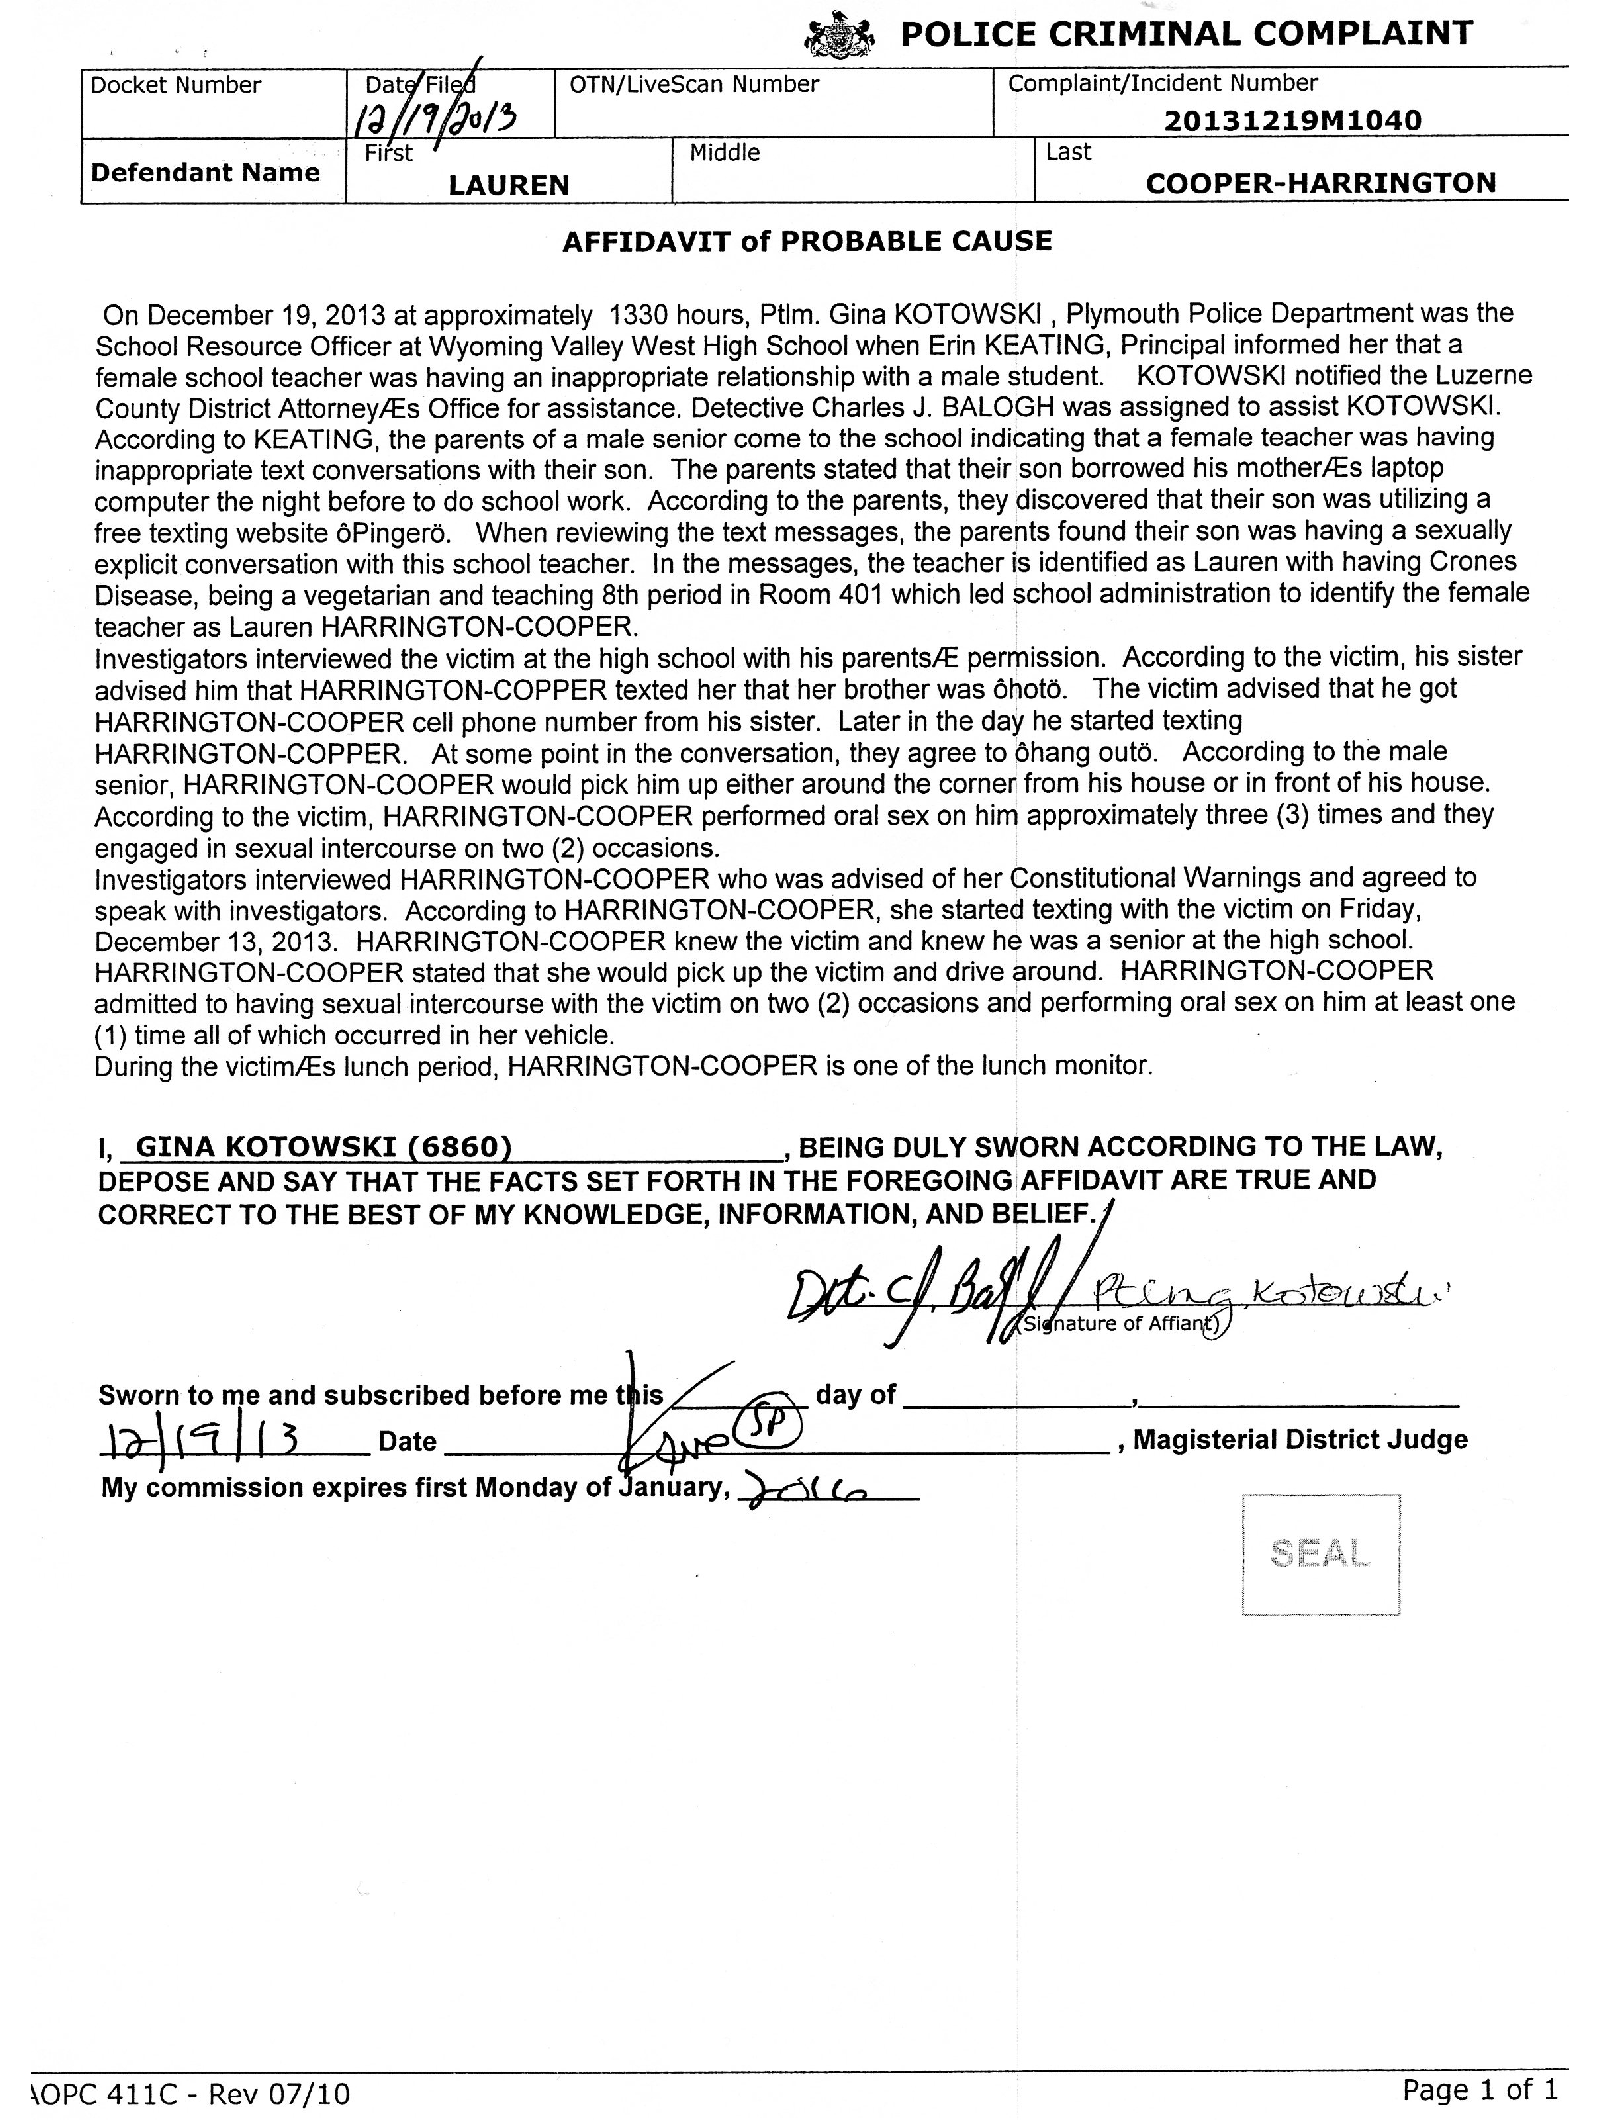 Copy of Harrington-Cooper Lauren Probable Cause Affidavit1.png